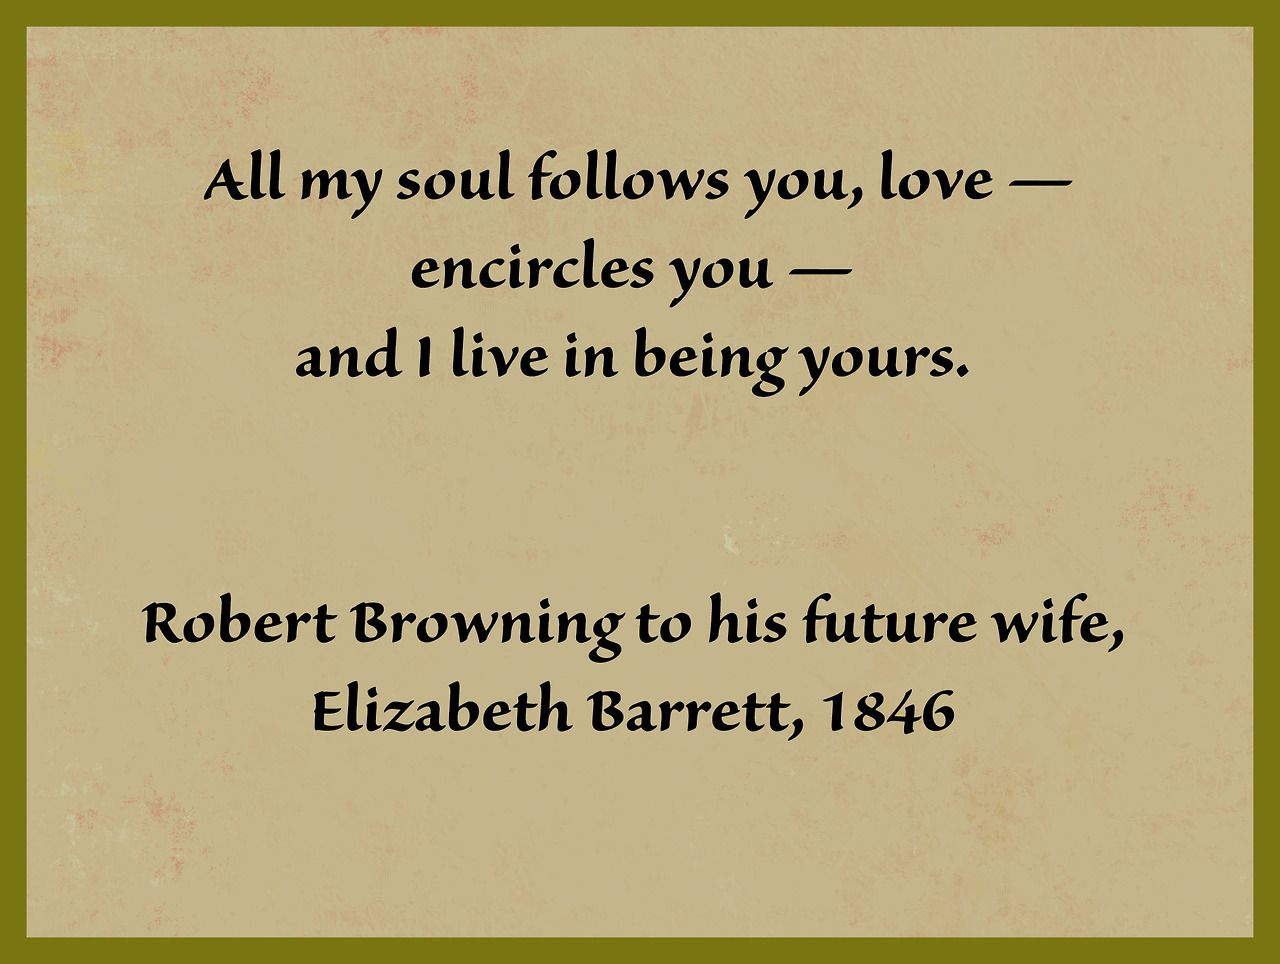 Love Quotes By Famous Poets Robert Browning To His Future Wife Elizabeth Barrettsigh